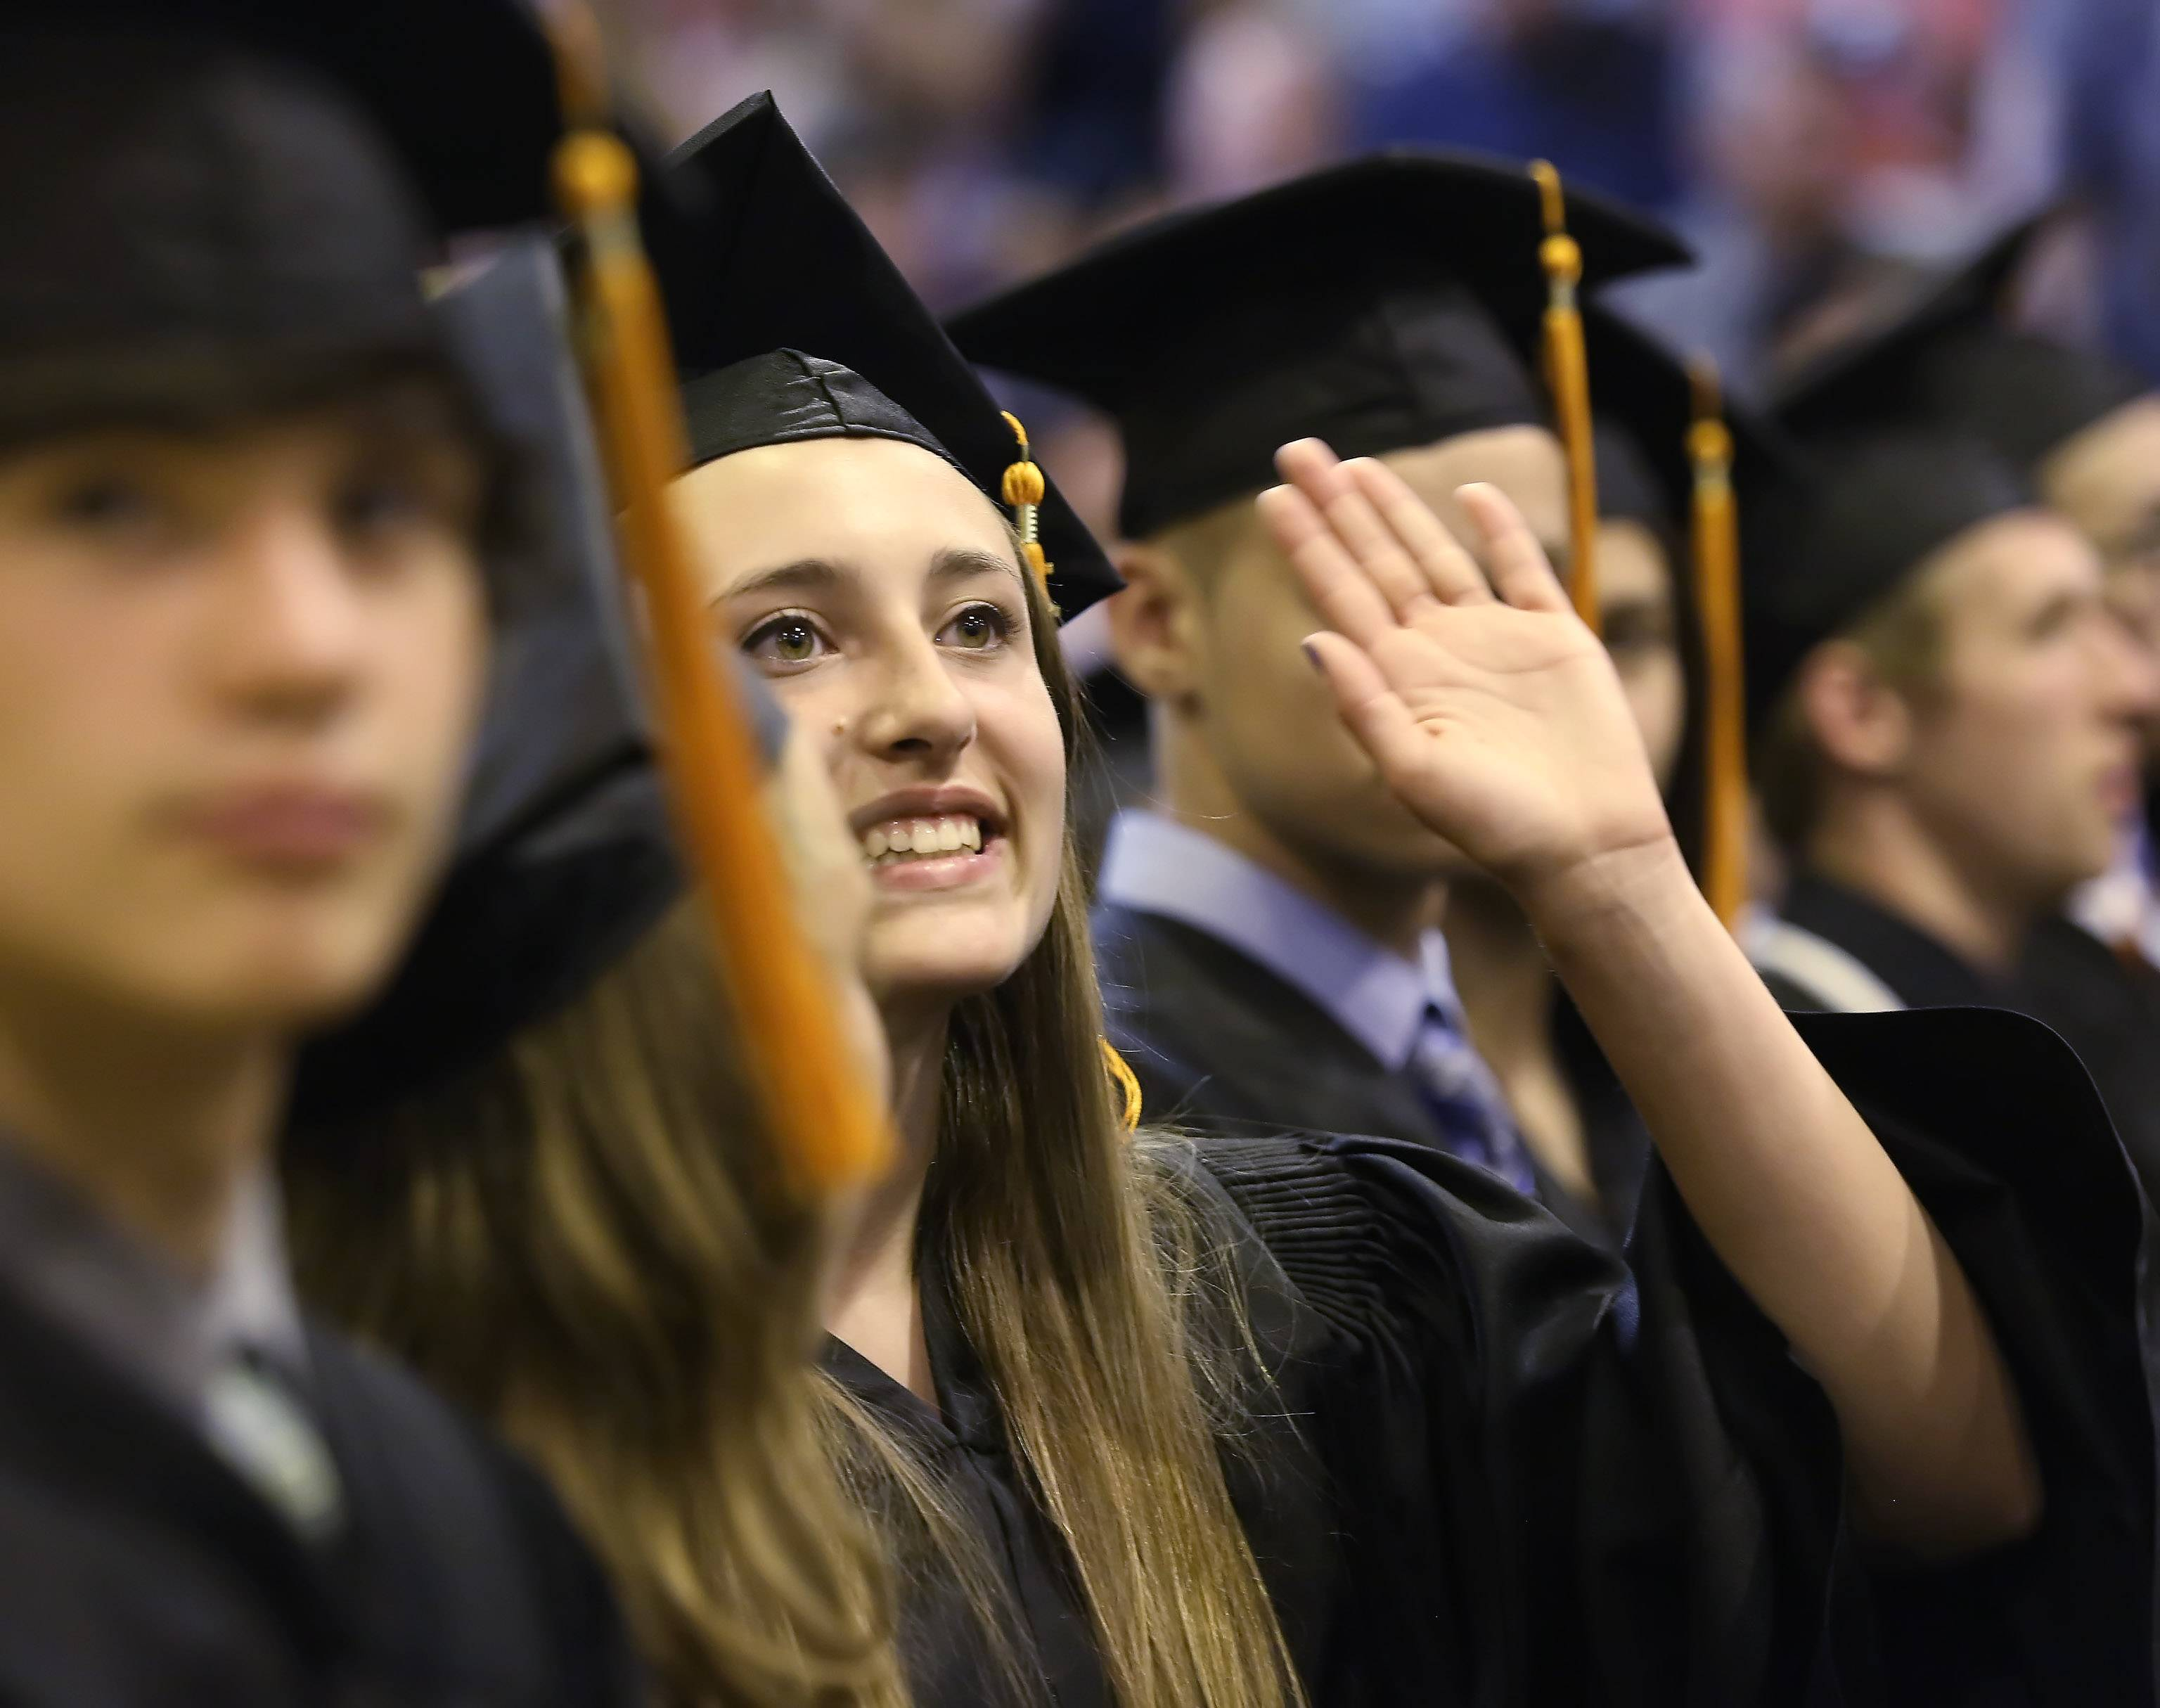 Carly Pisano waves to family and friends during the graduation ceremony Sunday at Hersey High School in Arlington Heights. There were 525 seniors who received diplomas at the school.